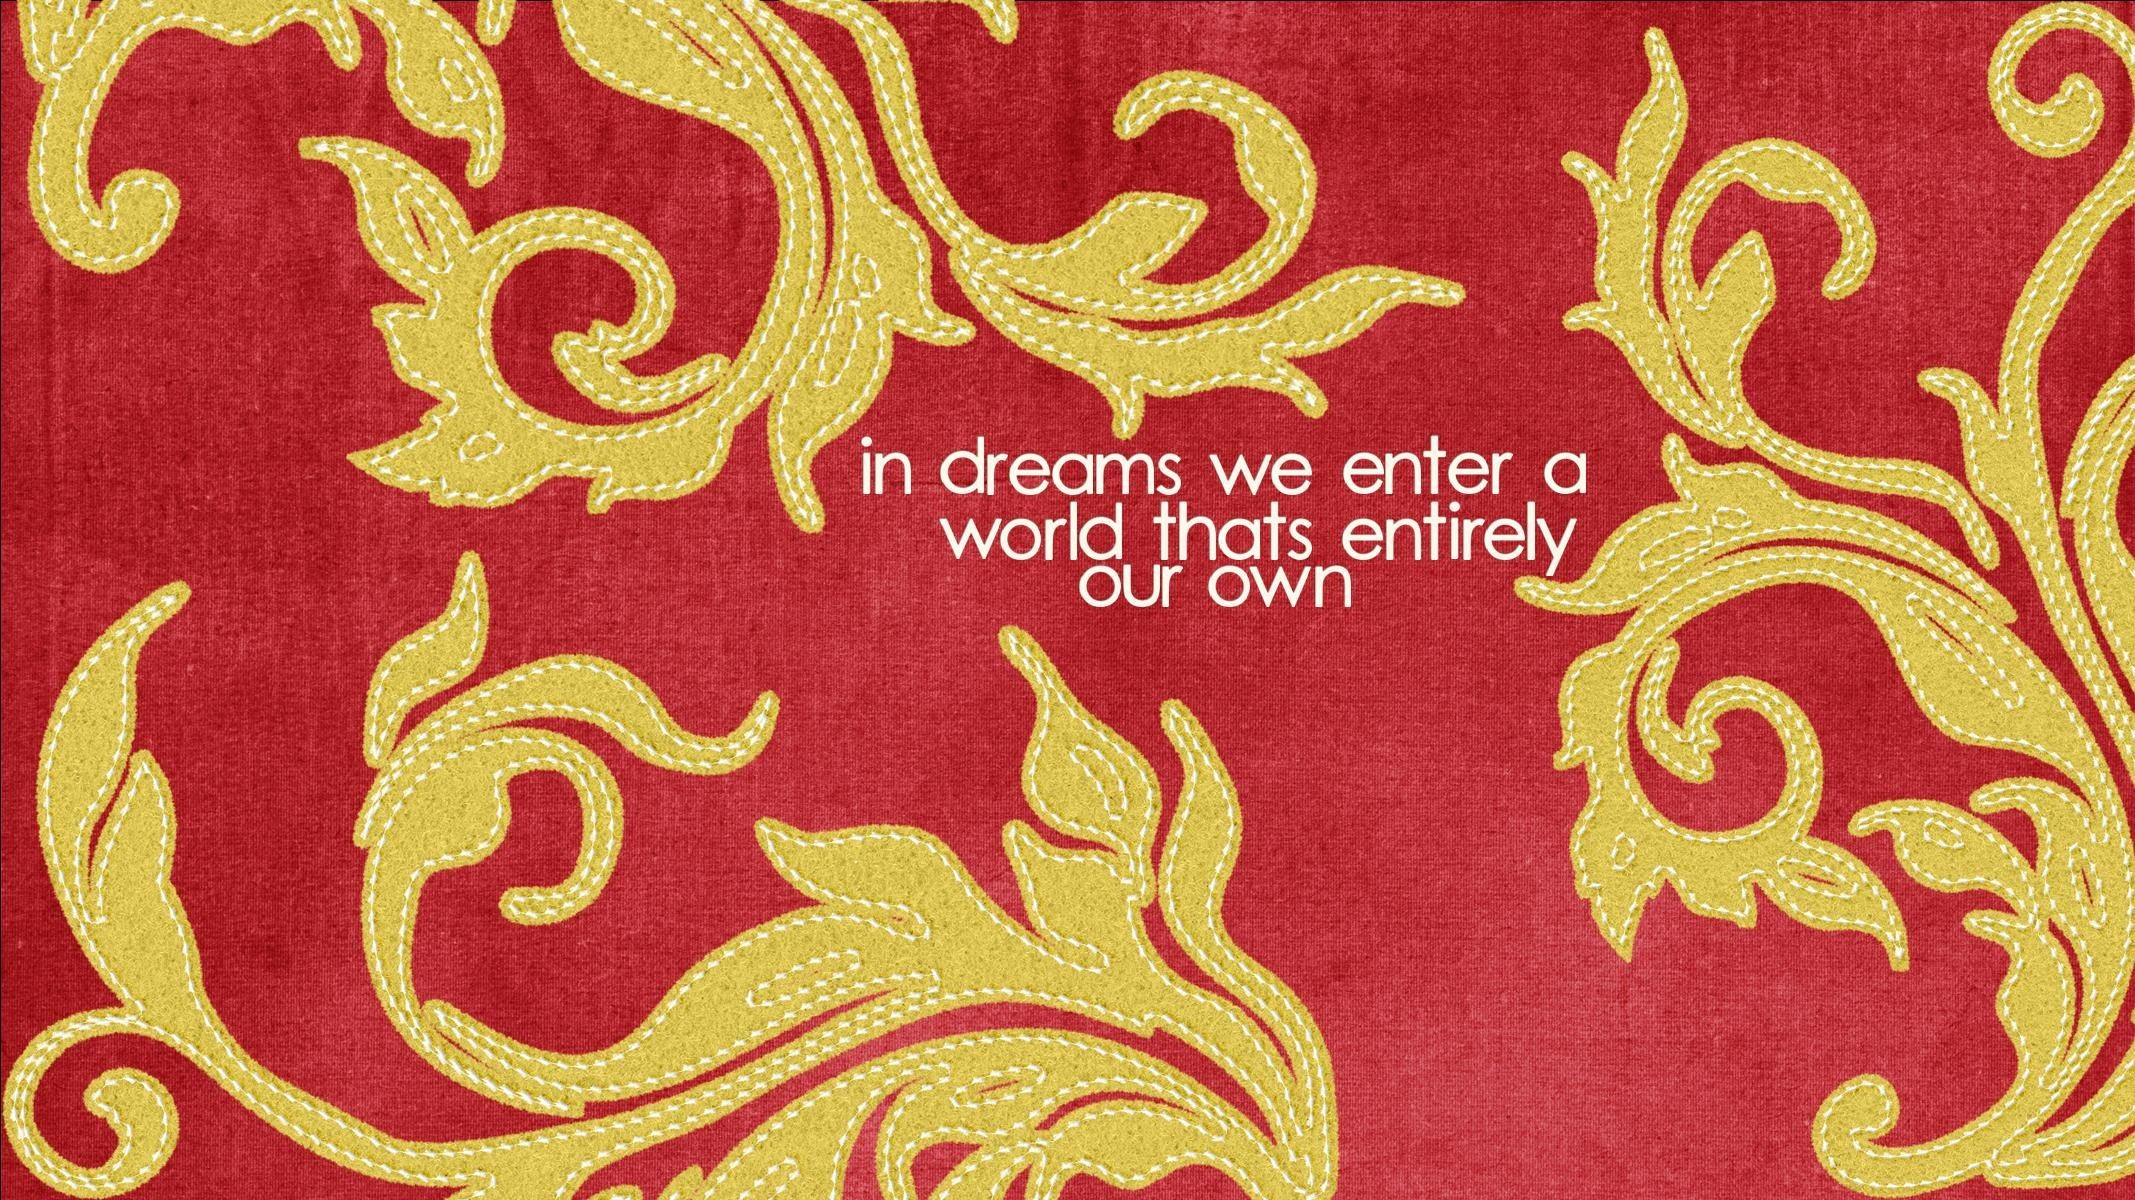 Res: 2135x1200, Gryffindor colors with a Dumbledore quote (Widescreen Wallpaper made by  Deanna